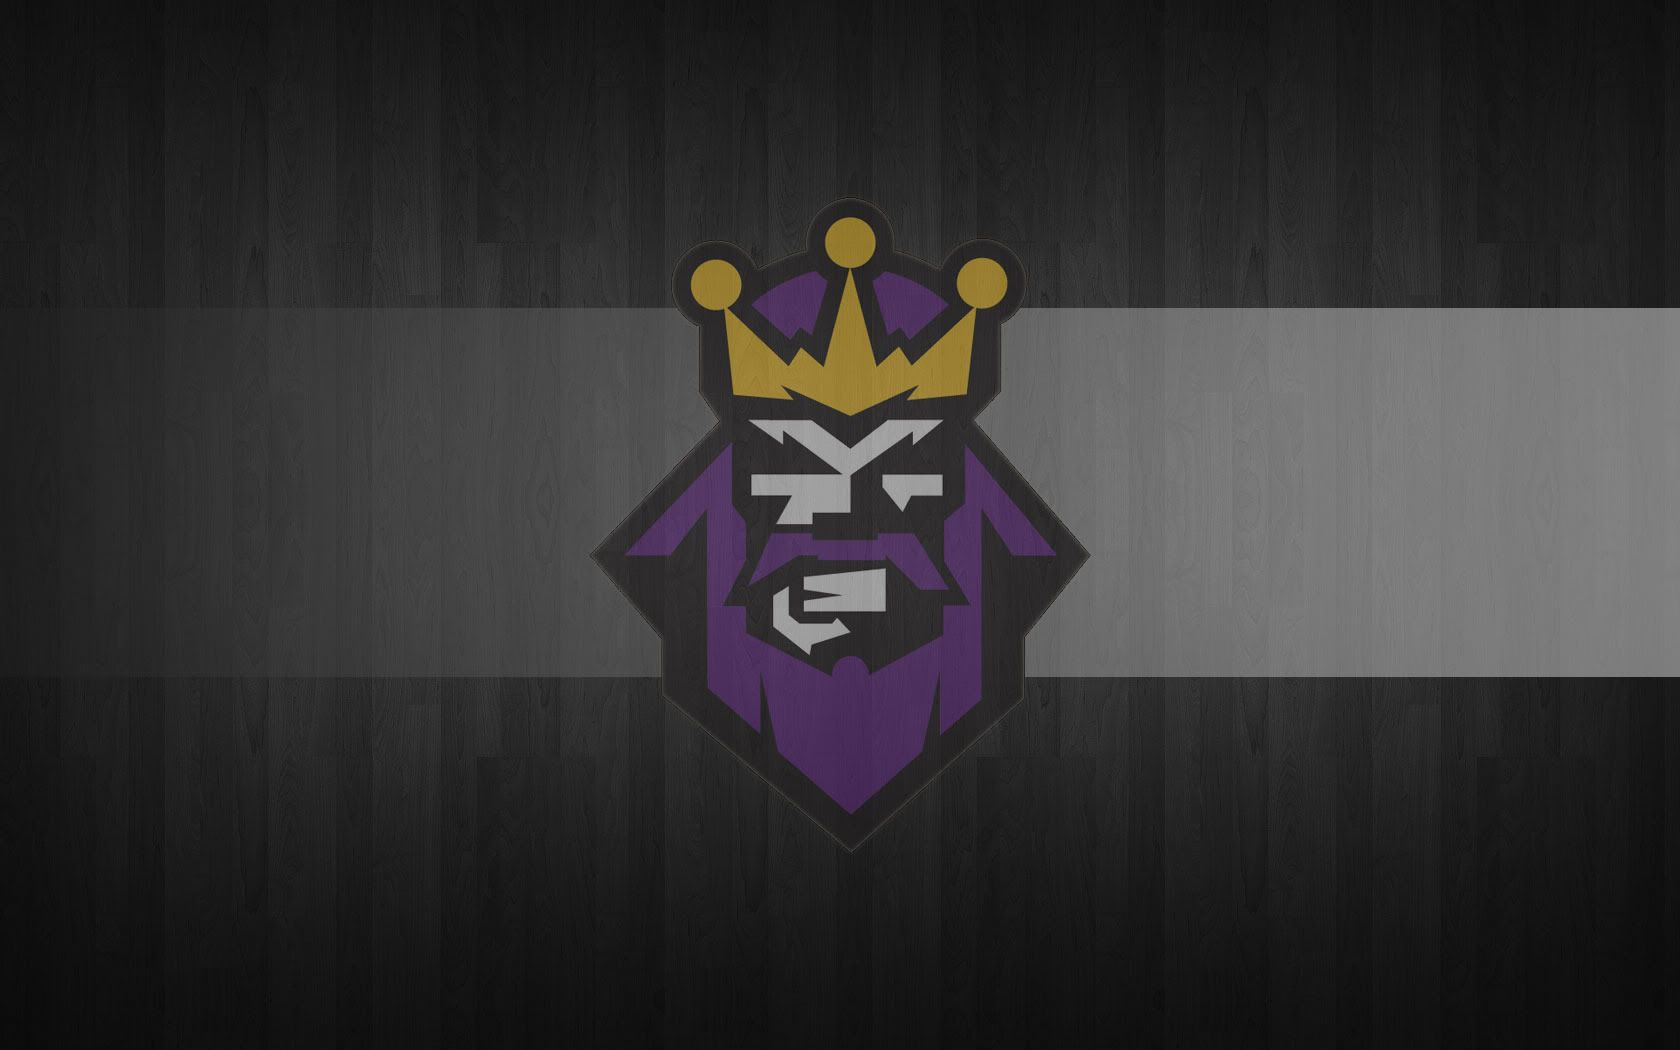 Free Download Los Angeles Kings Wallpapers 1680x1050 For Your